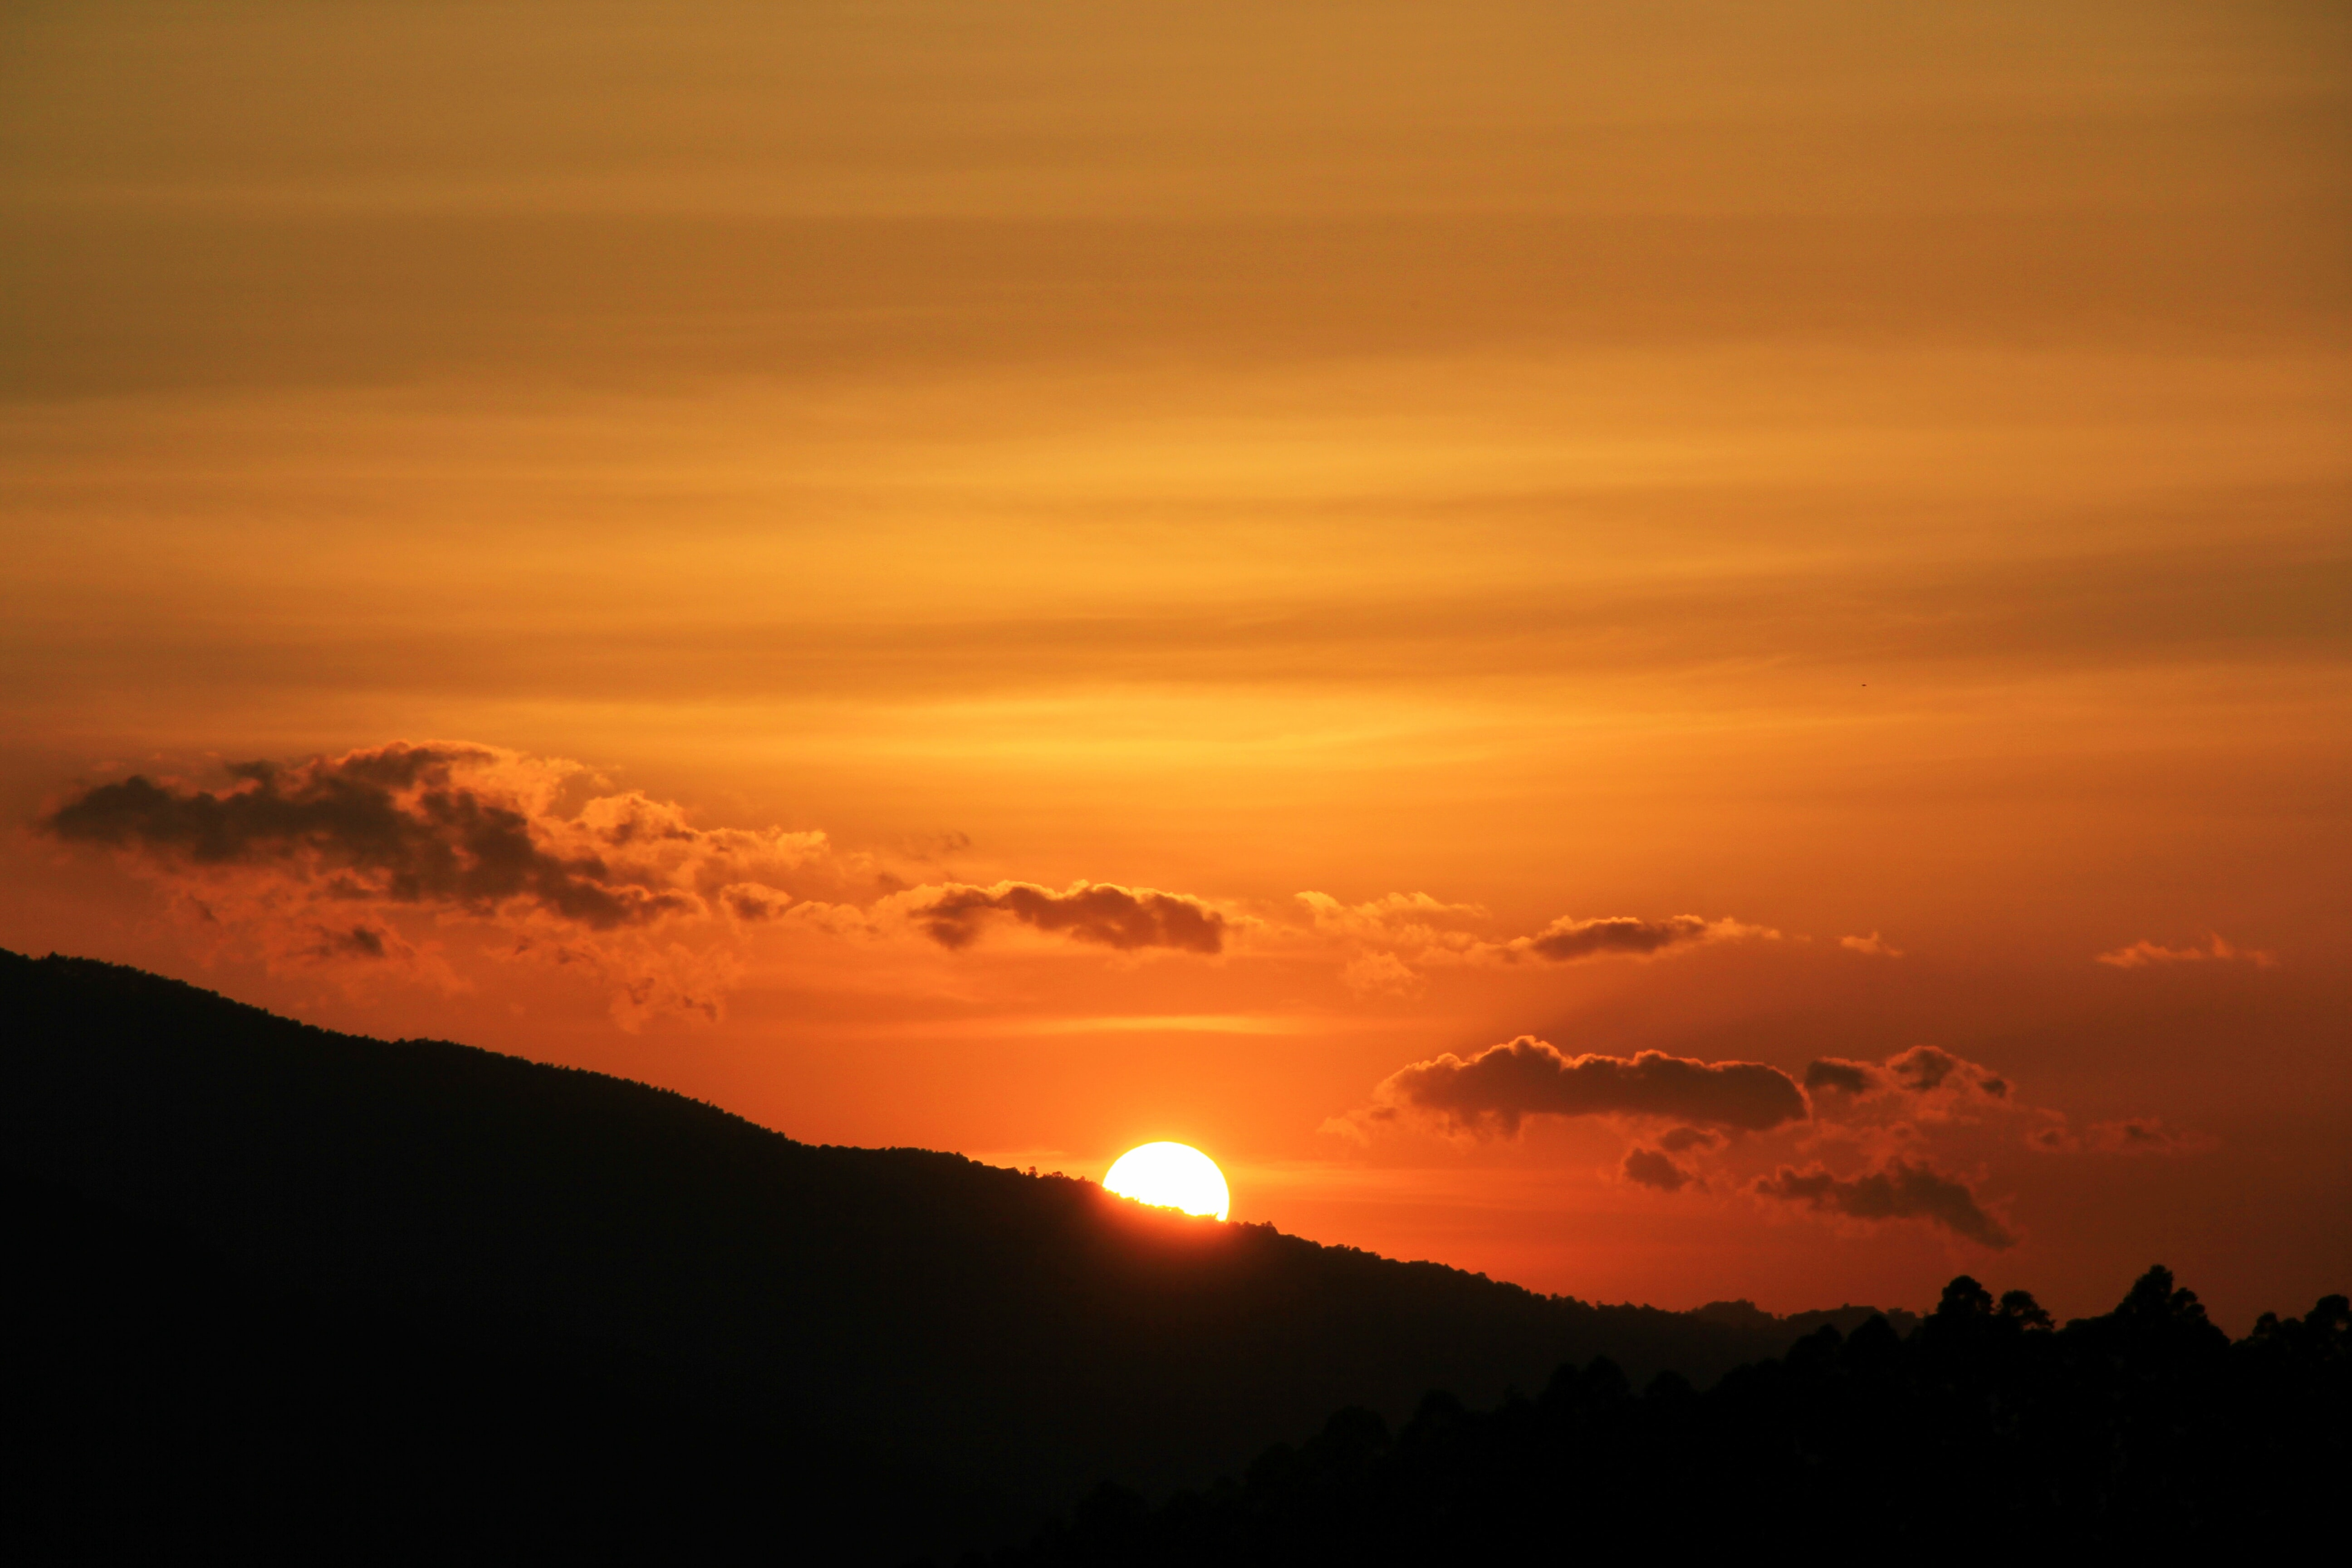 sun behind silhouette of a mountain